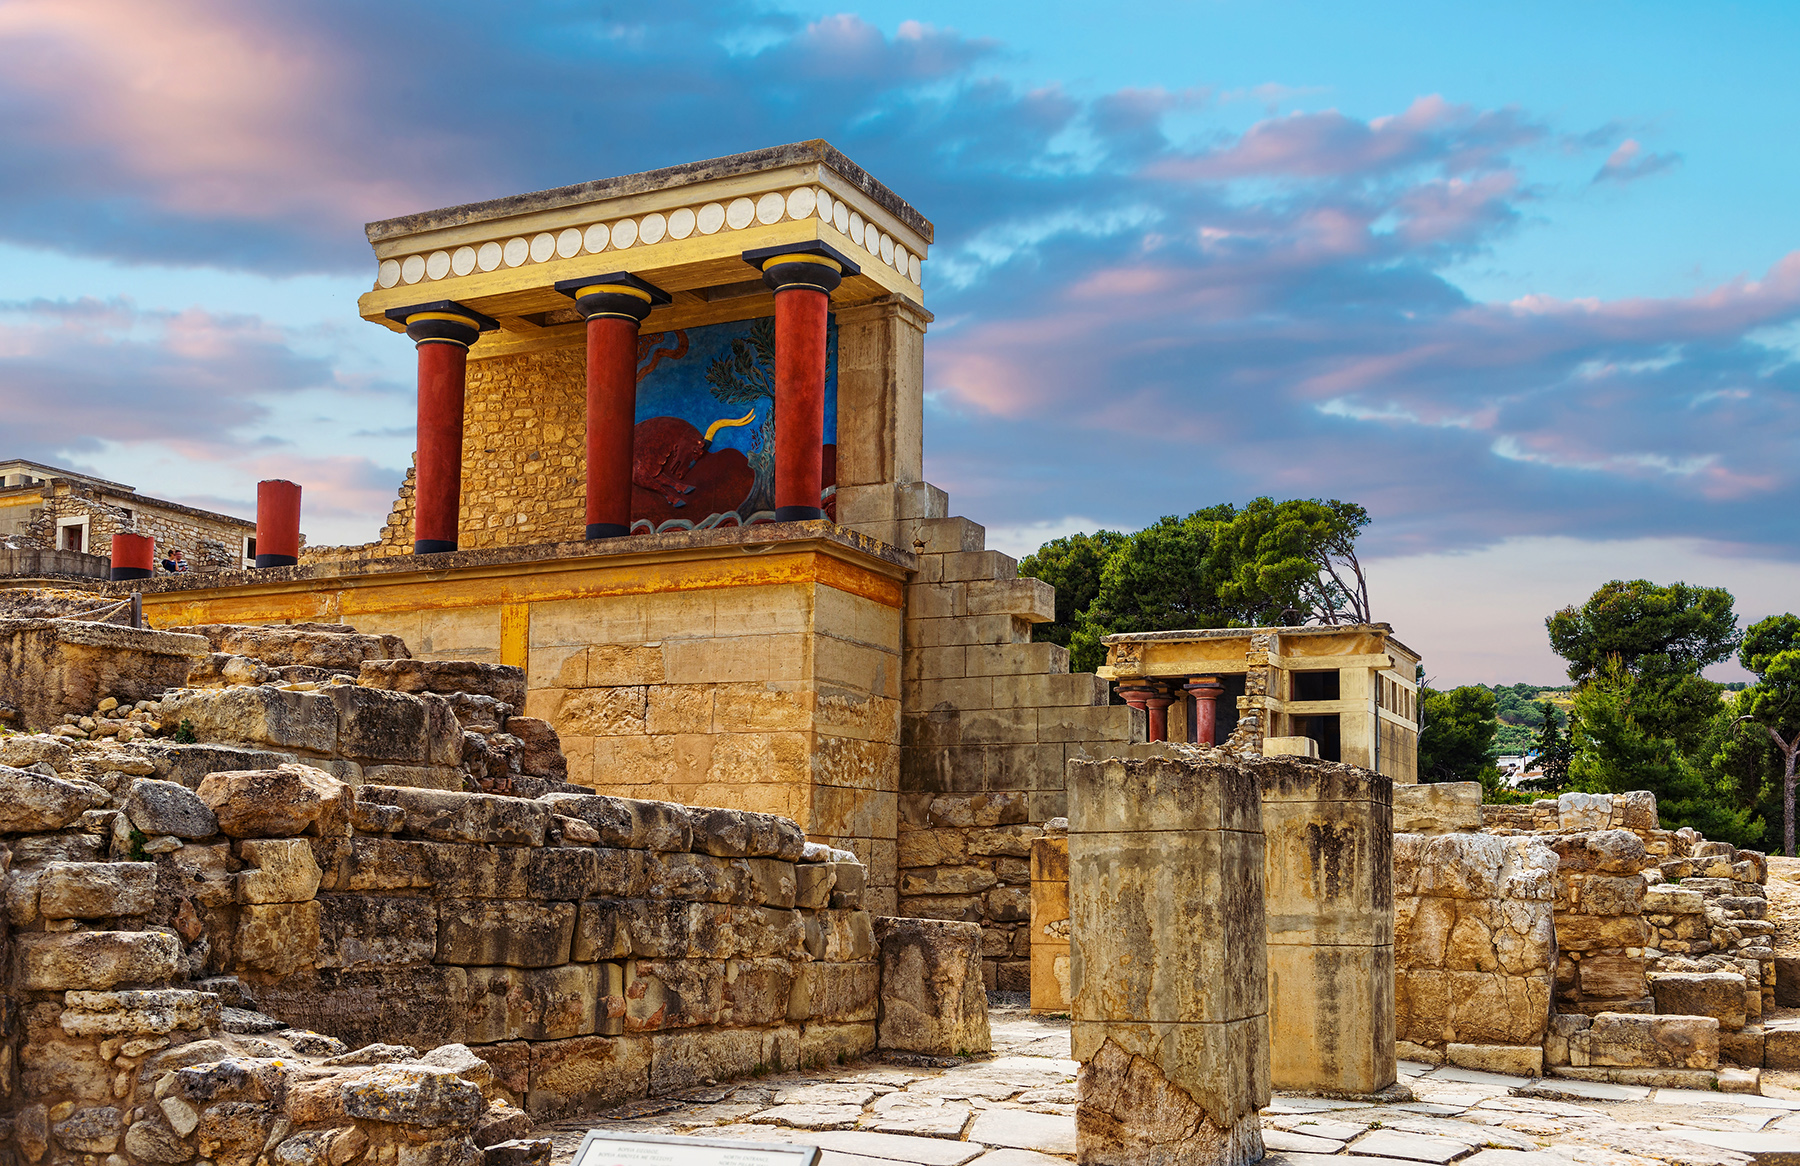 Visit The Palace Of Knossos And Explore The Wine Roads Of Heraklion